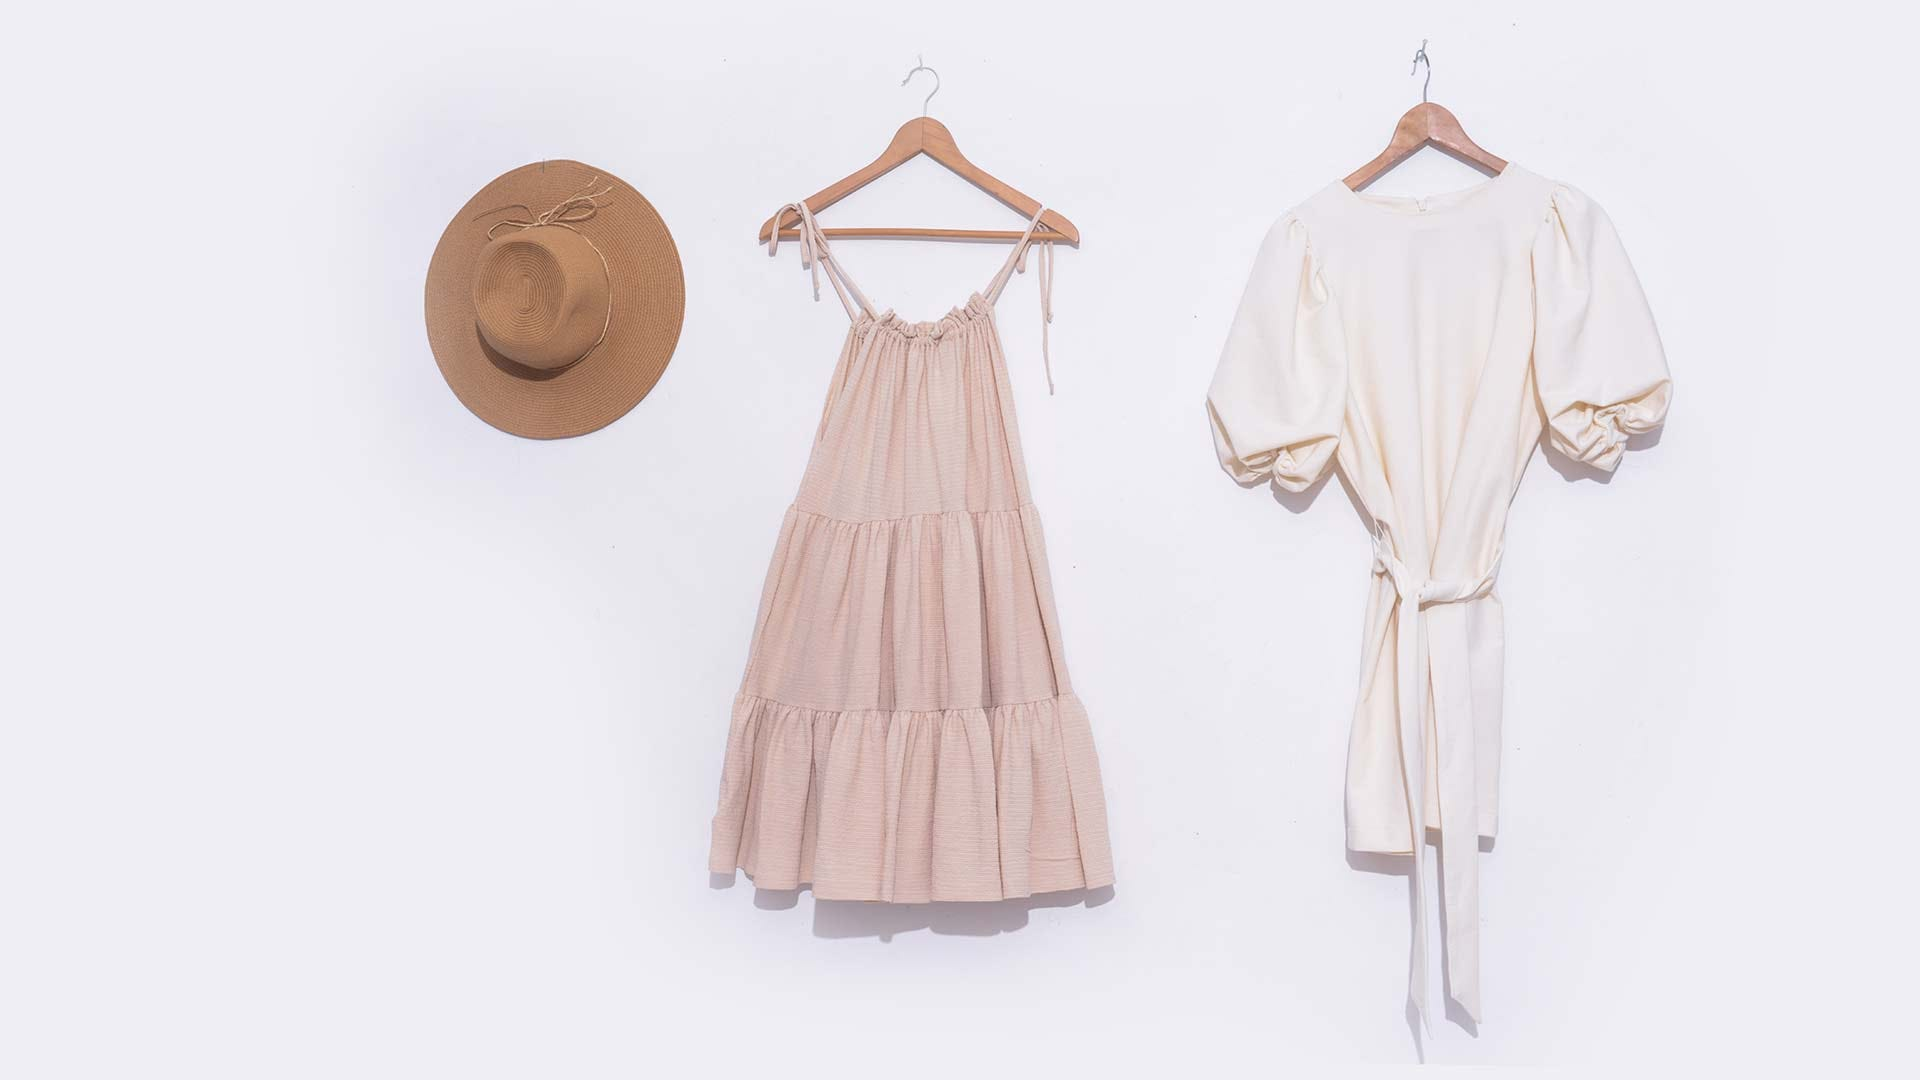 Items of clothing hung against a white background.